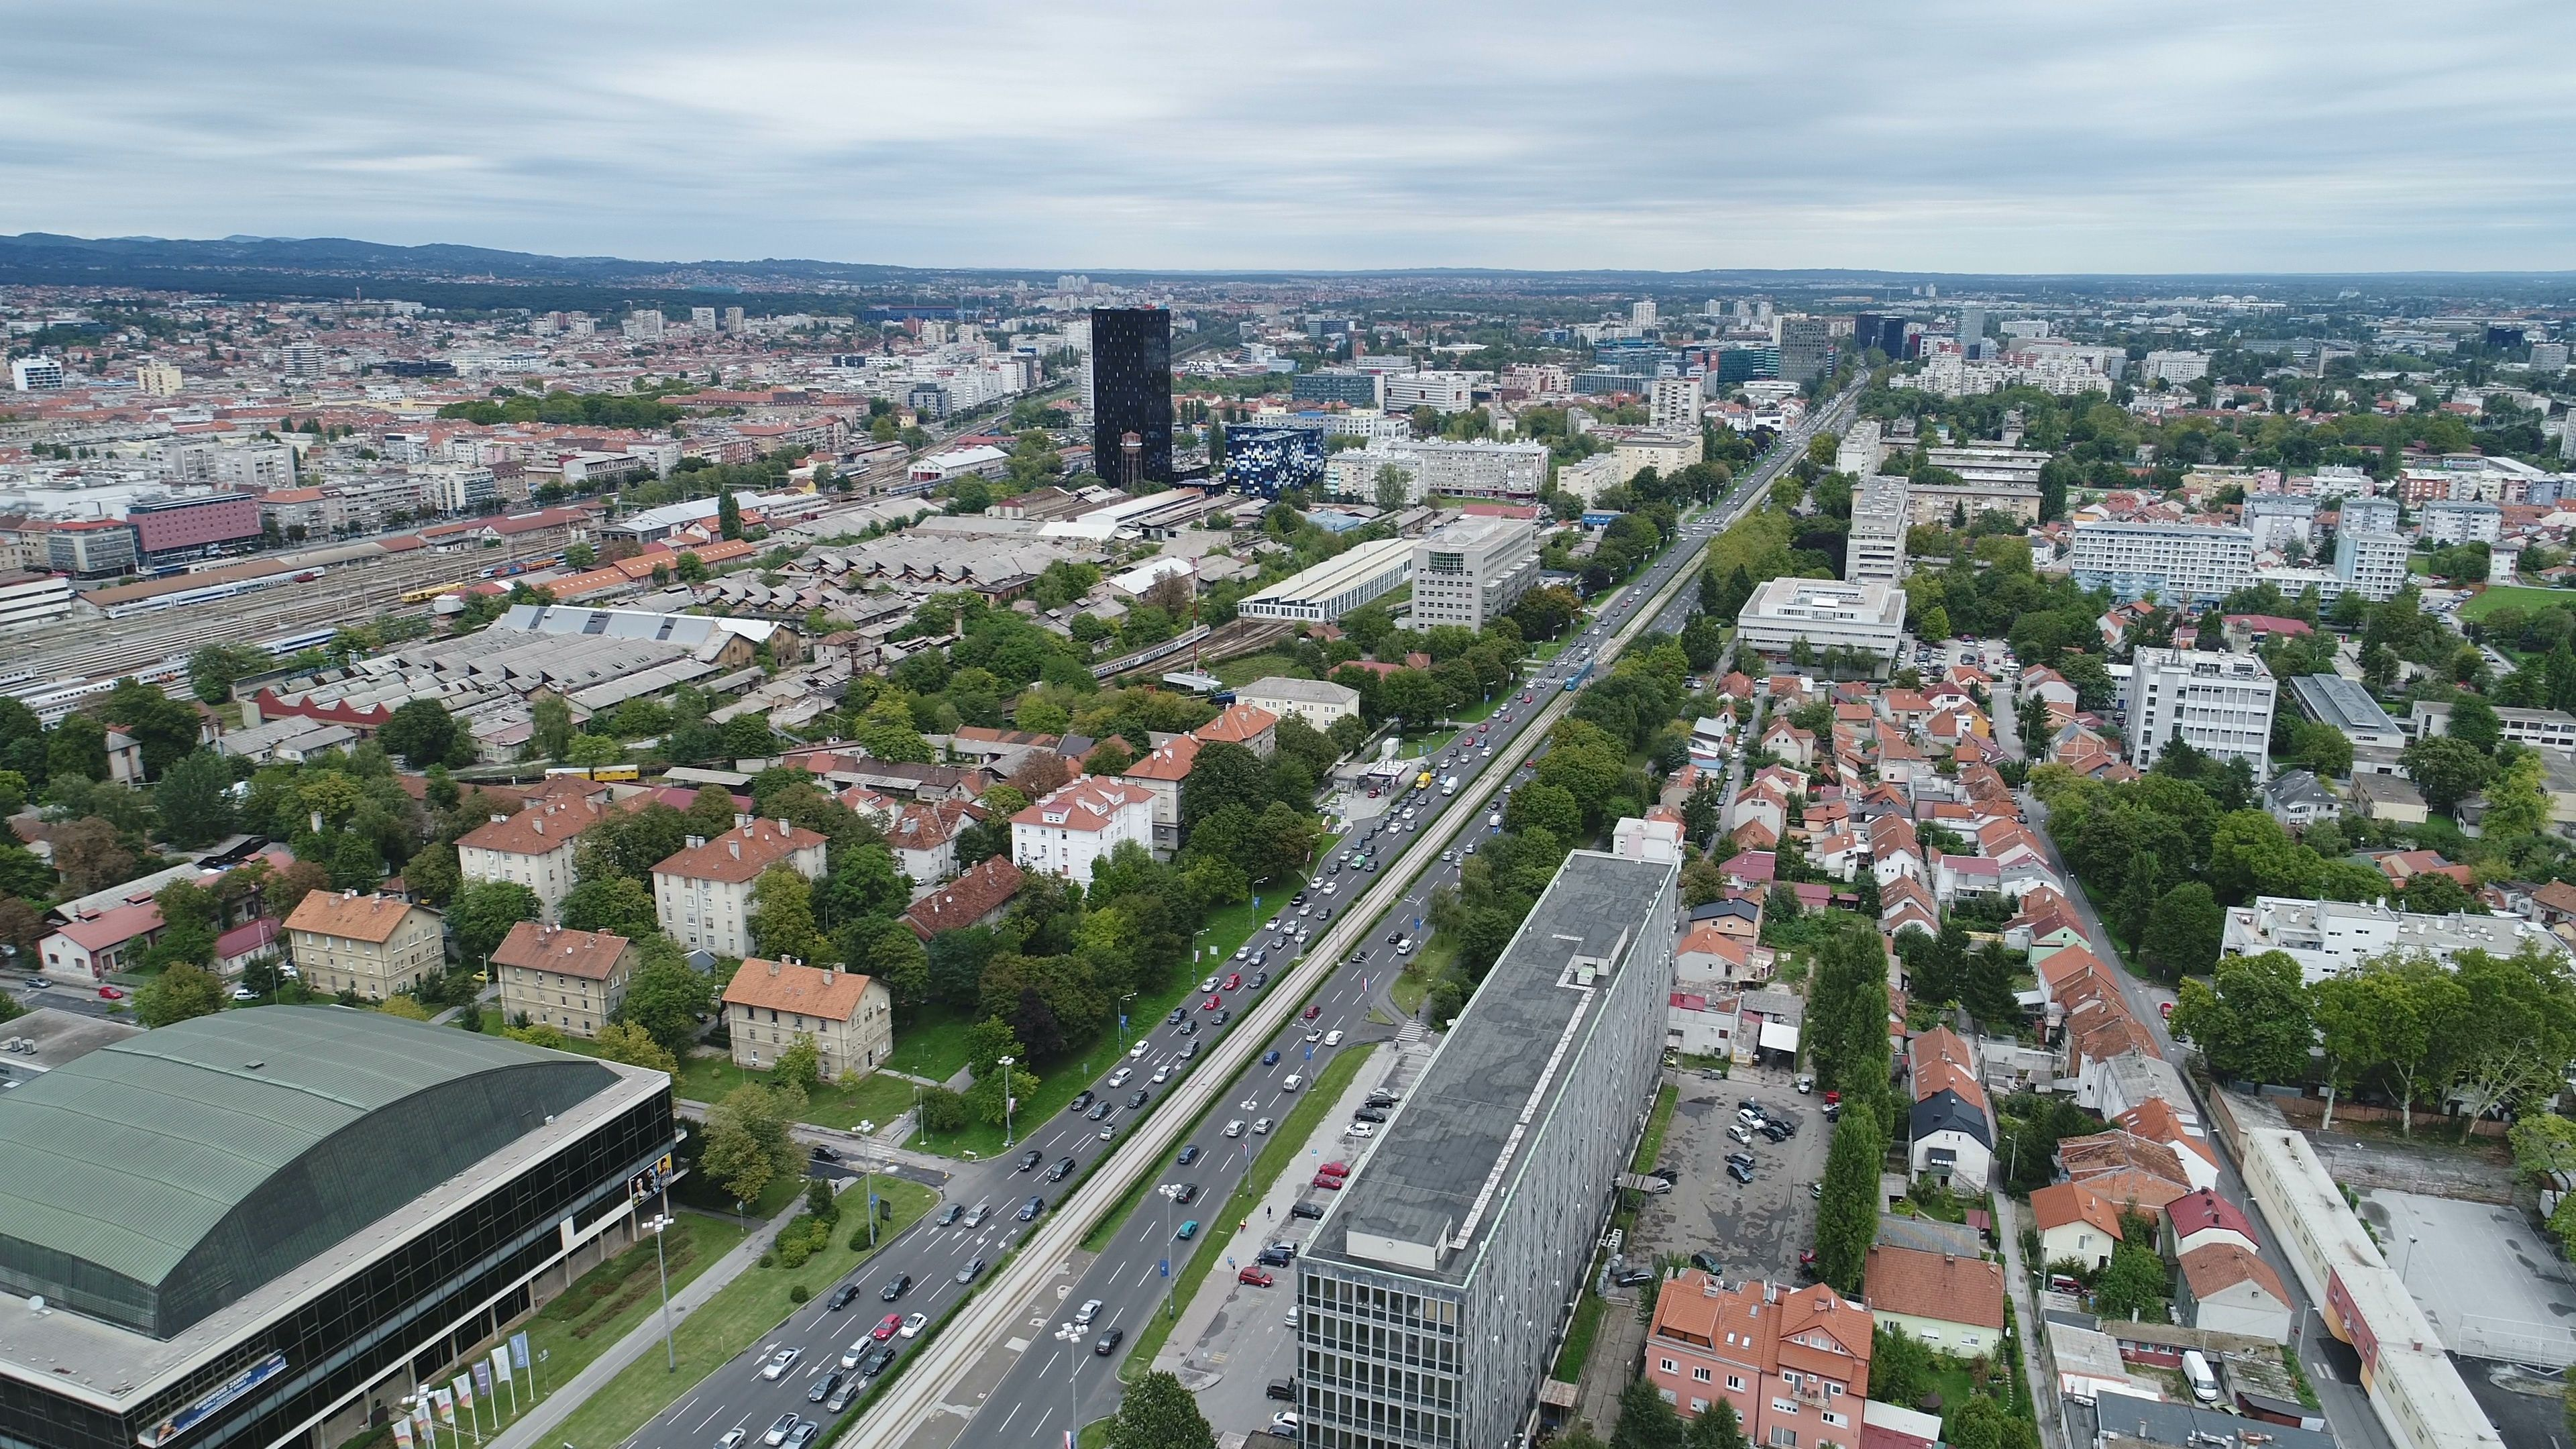 Drone Flight Of Traffic Driving Over Highway In Suburbs Zagreb Croatia Stock Footage Driving Highway Traffic Drone Traffic Driving Highway Traffic Traffic